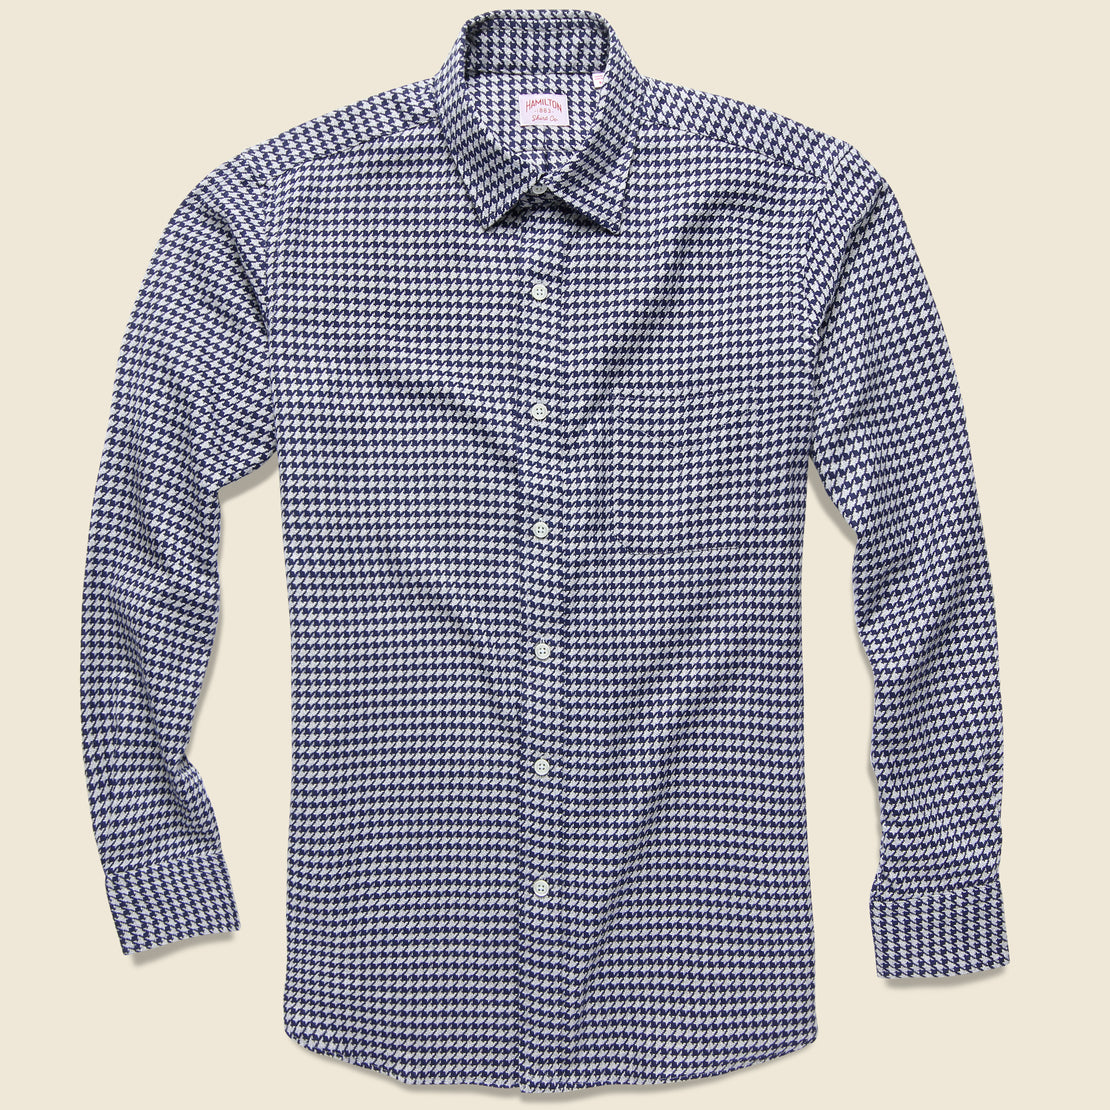 Hamilton Shirt Co. Houndstooth Shirt - Grey/Navy